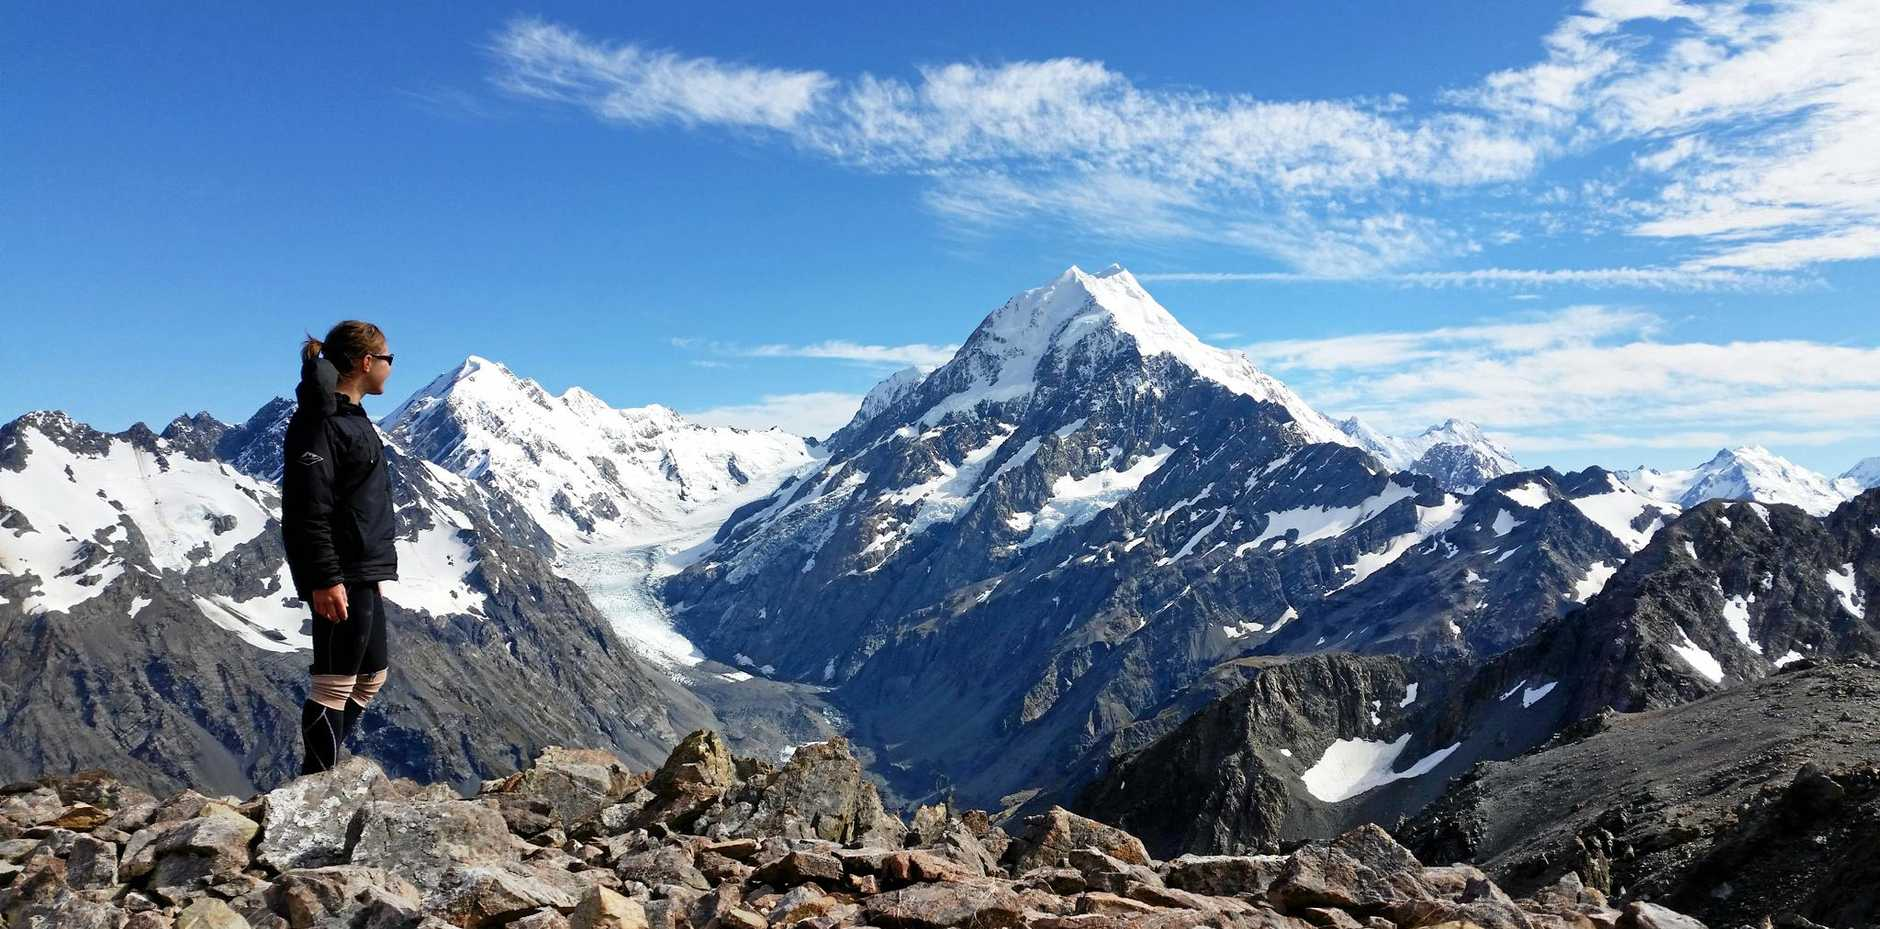 WALK ON: Former QT photographer Sarah Harvey will hike through the Pyrenees in June to raise funds for Epidermolysis Bullosa (EB) sufferers. She is pictured here in NZ overlooking Mt Cook.